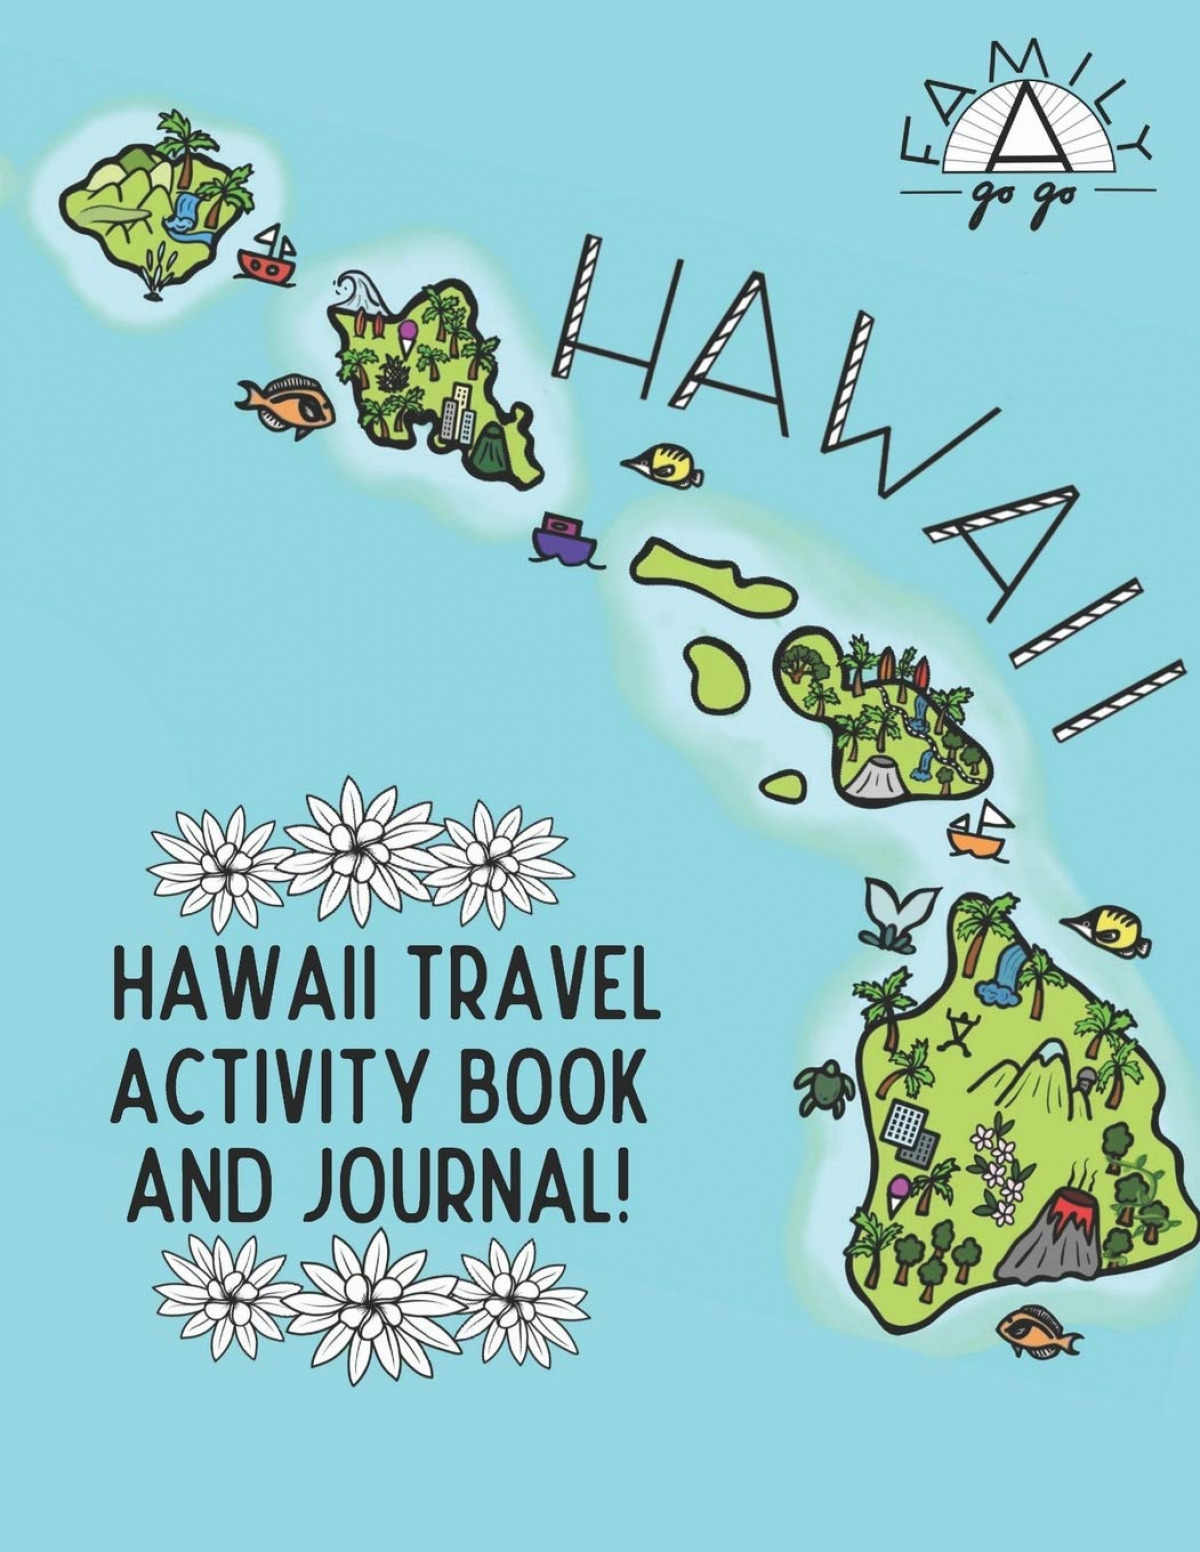 Hawaii travel activity book and journal:for kids!